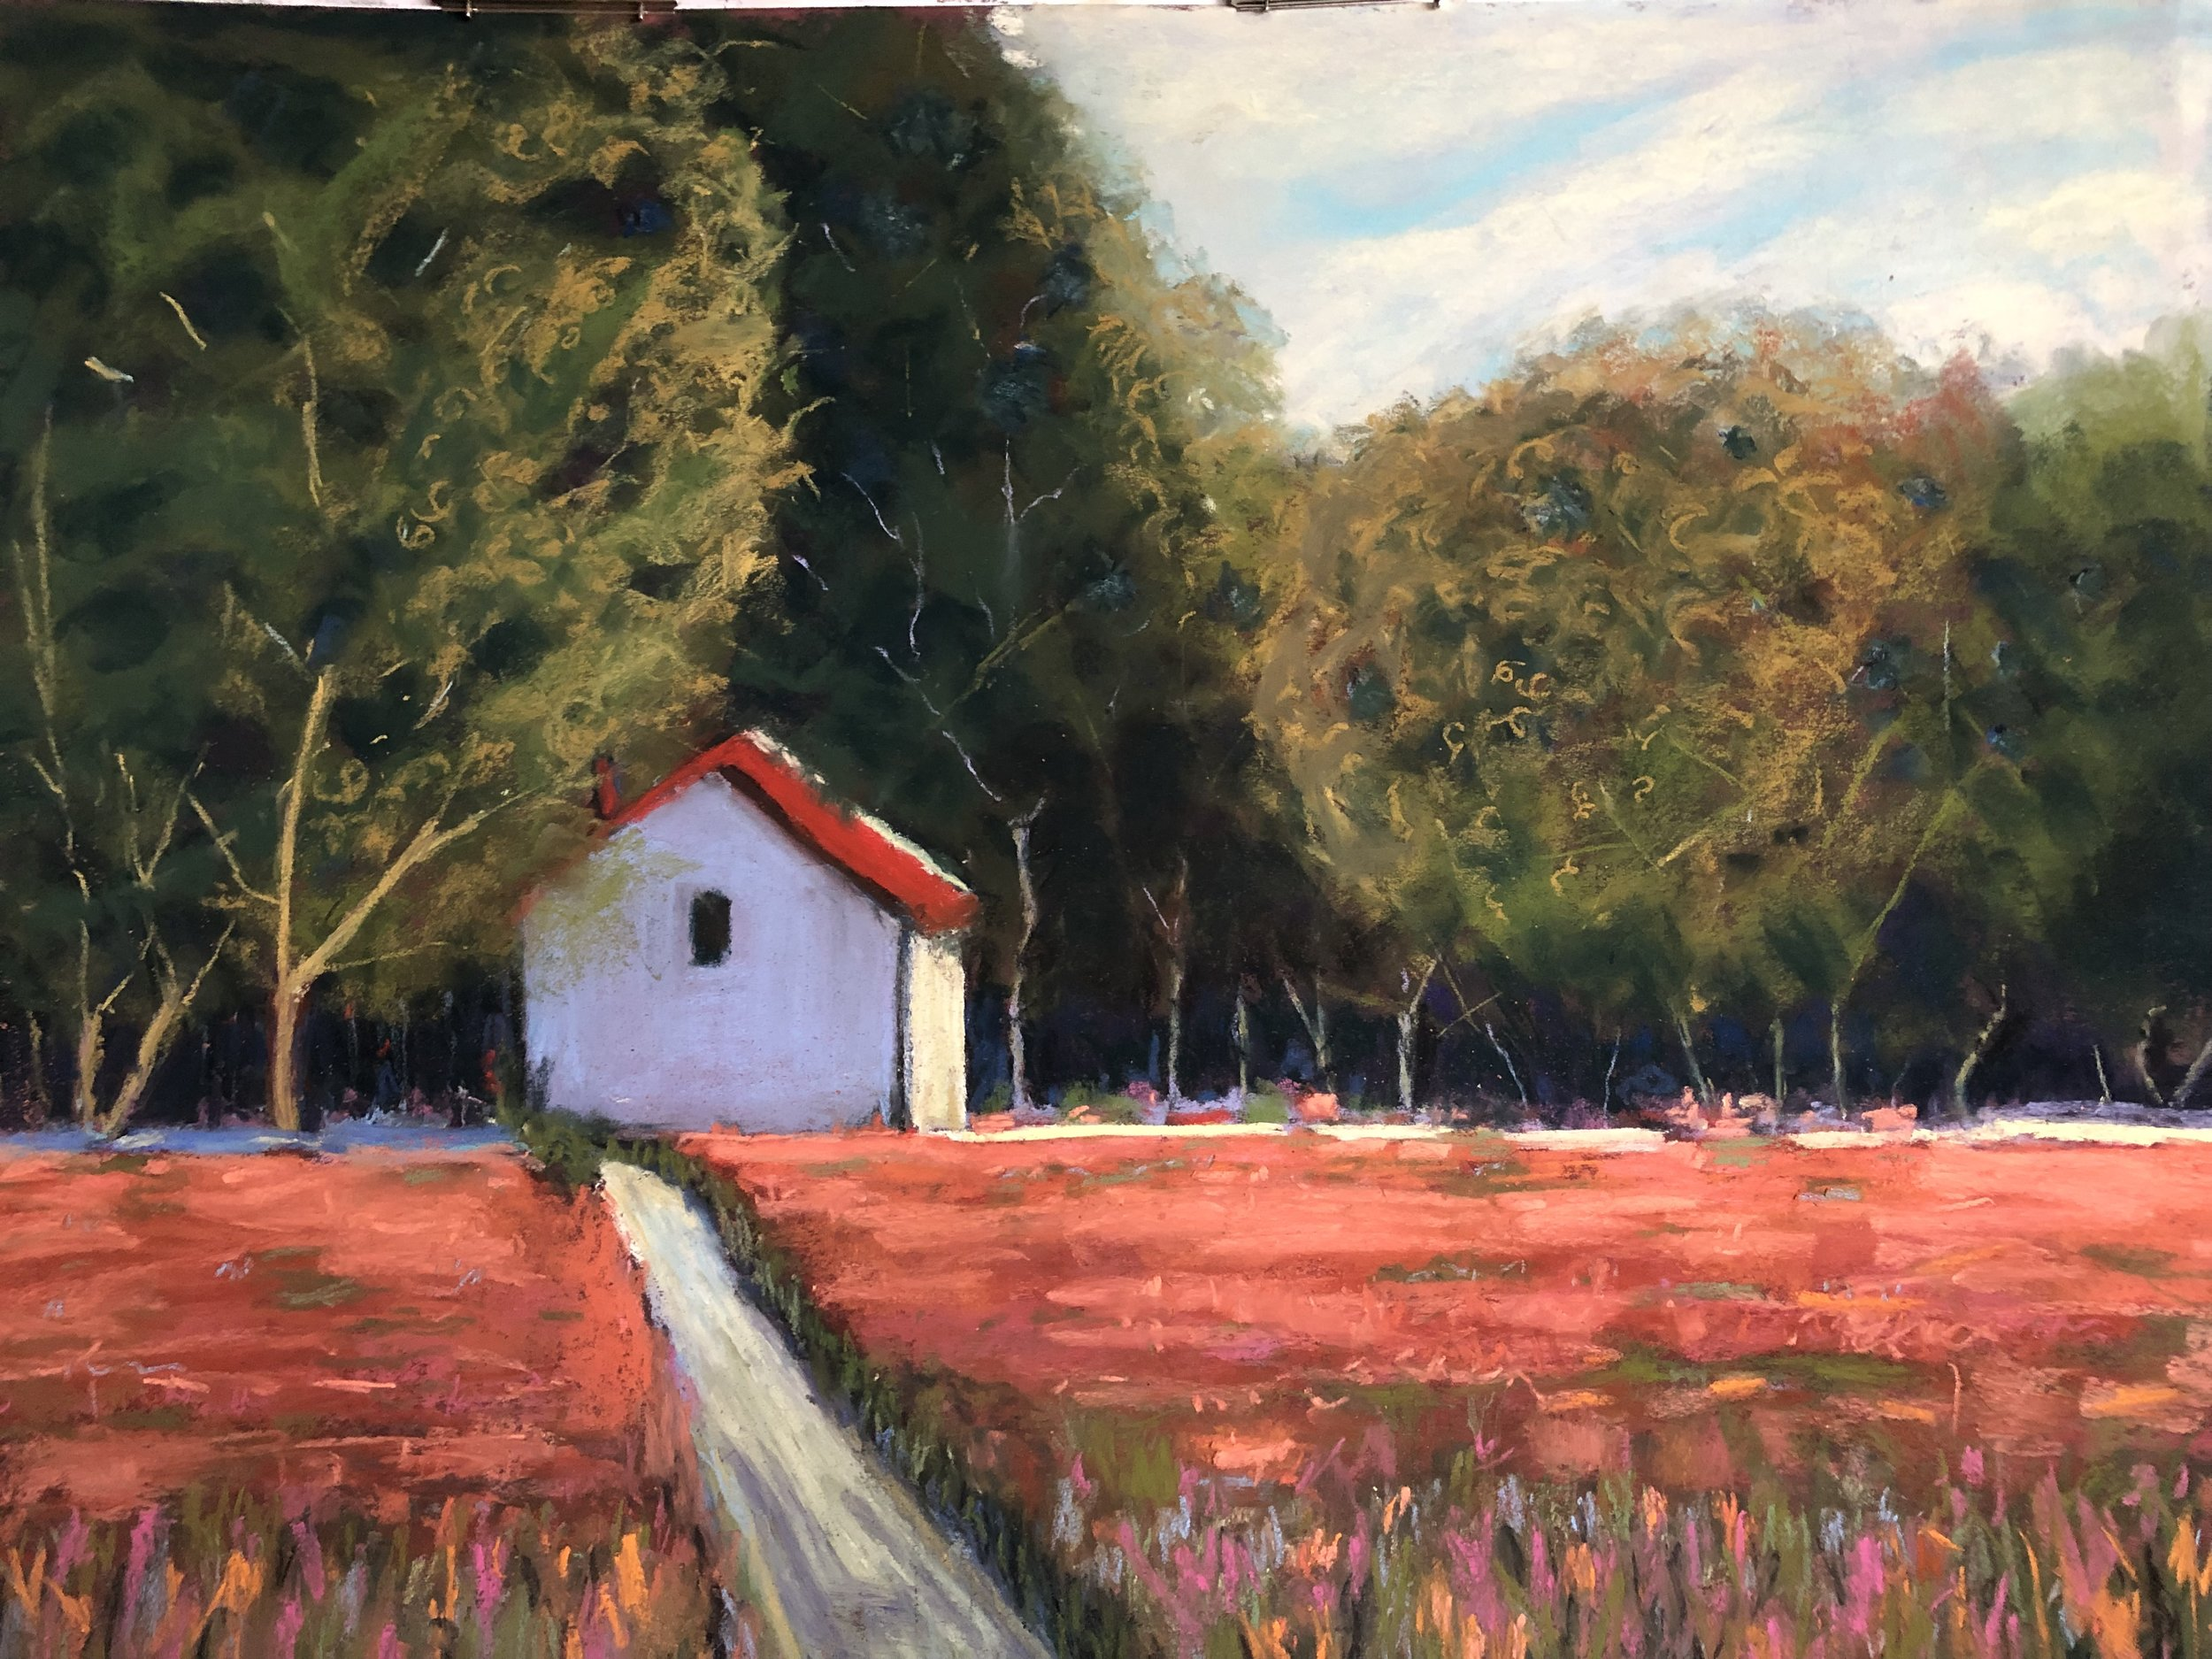 The House with the Red Roof - Medium/Materials used: Soft Pastels on Canson Mi-Teintes paper.Measurements (framed): 67cm x 81cmMeasurements (Unframed): 50cm x 65cm